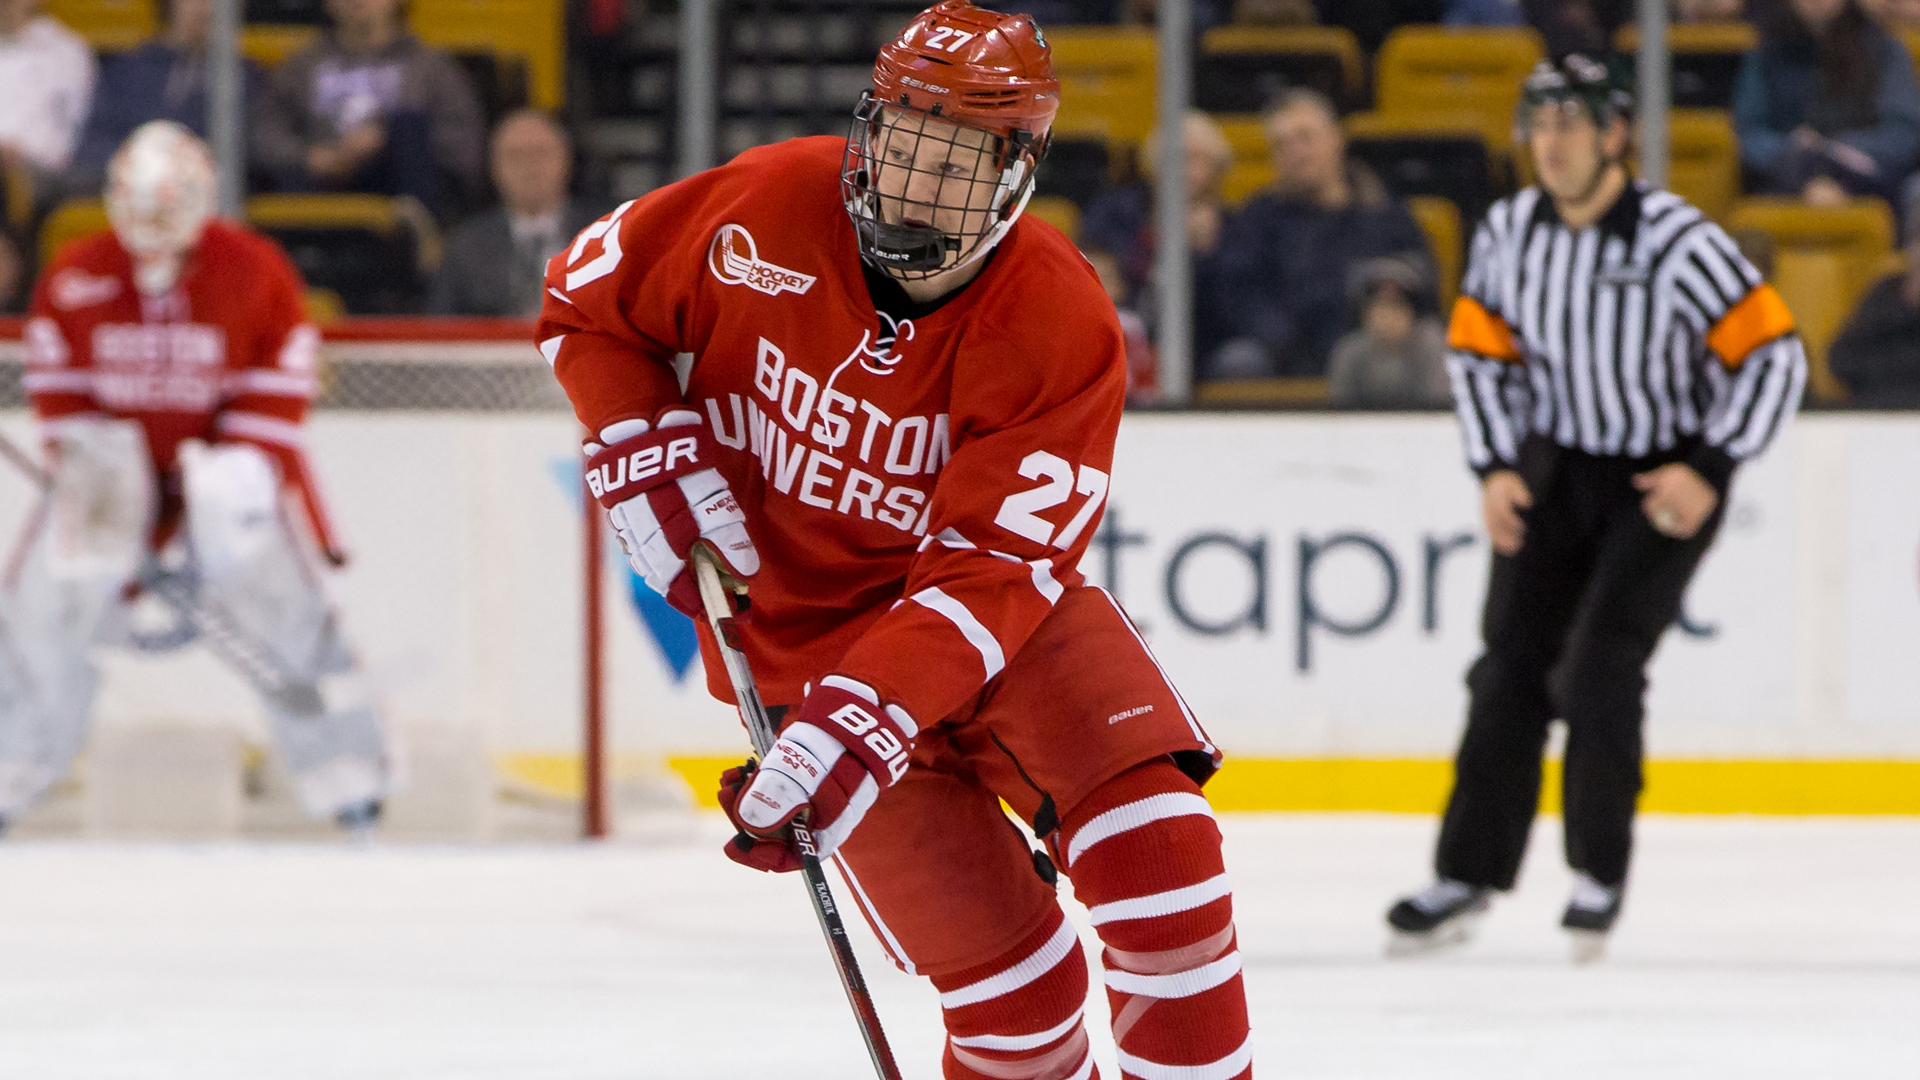 Brady Tkachuk - Men's Ice Hockey - Boston University Athletics